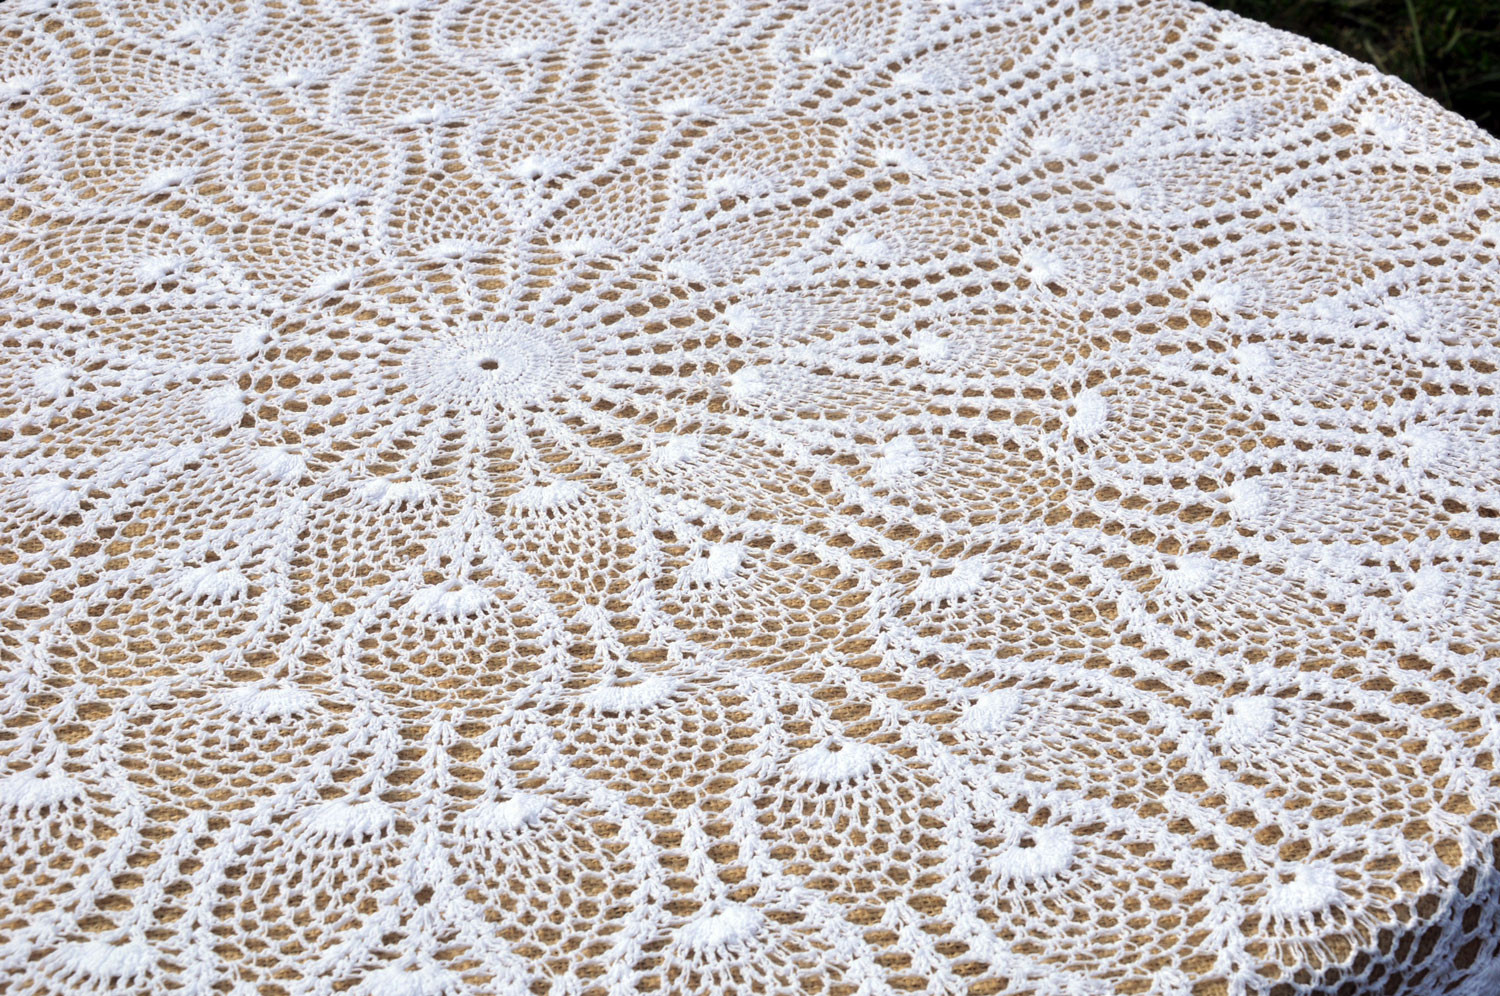 Pineapple Tablecloth Crochet Pattern Free Inspirational 90 Inch Round Lace Crochet Tablecloth Of Perfect 41 Images Pineapple Tablecloth Crochet Pattern Free